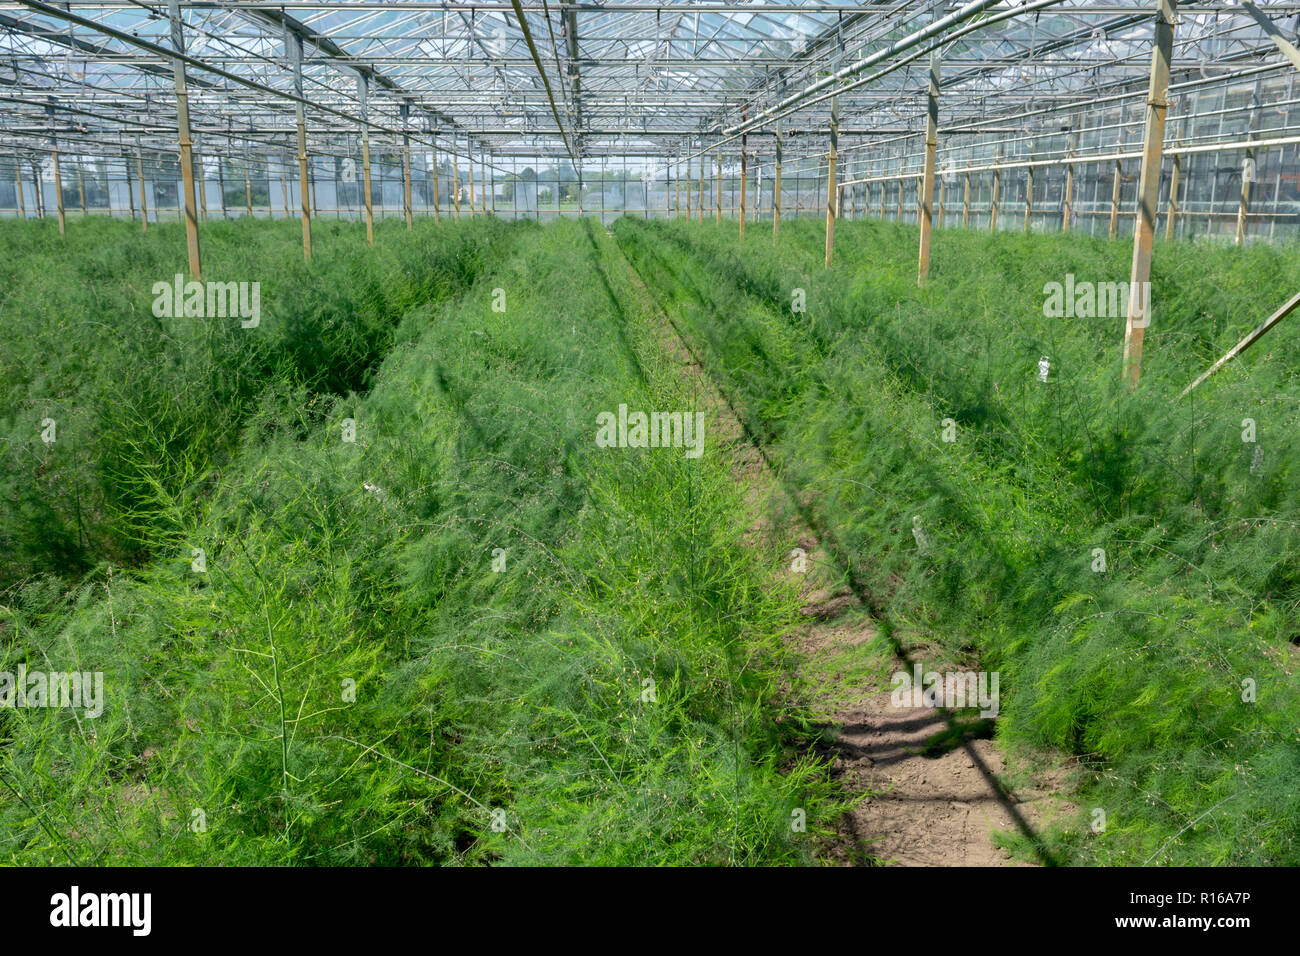 Growing Green Asparagus Plants For Seeds In Greenhouse Stock Photo Alamy